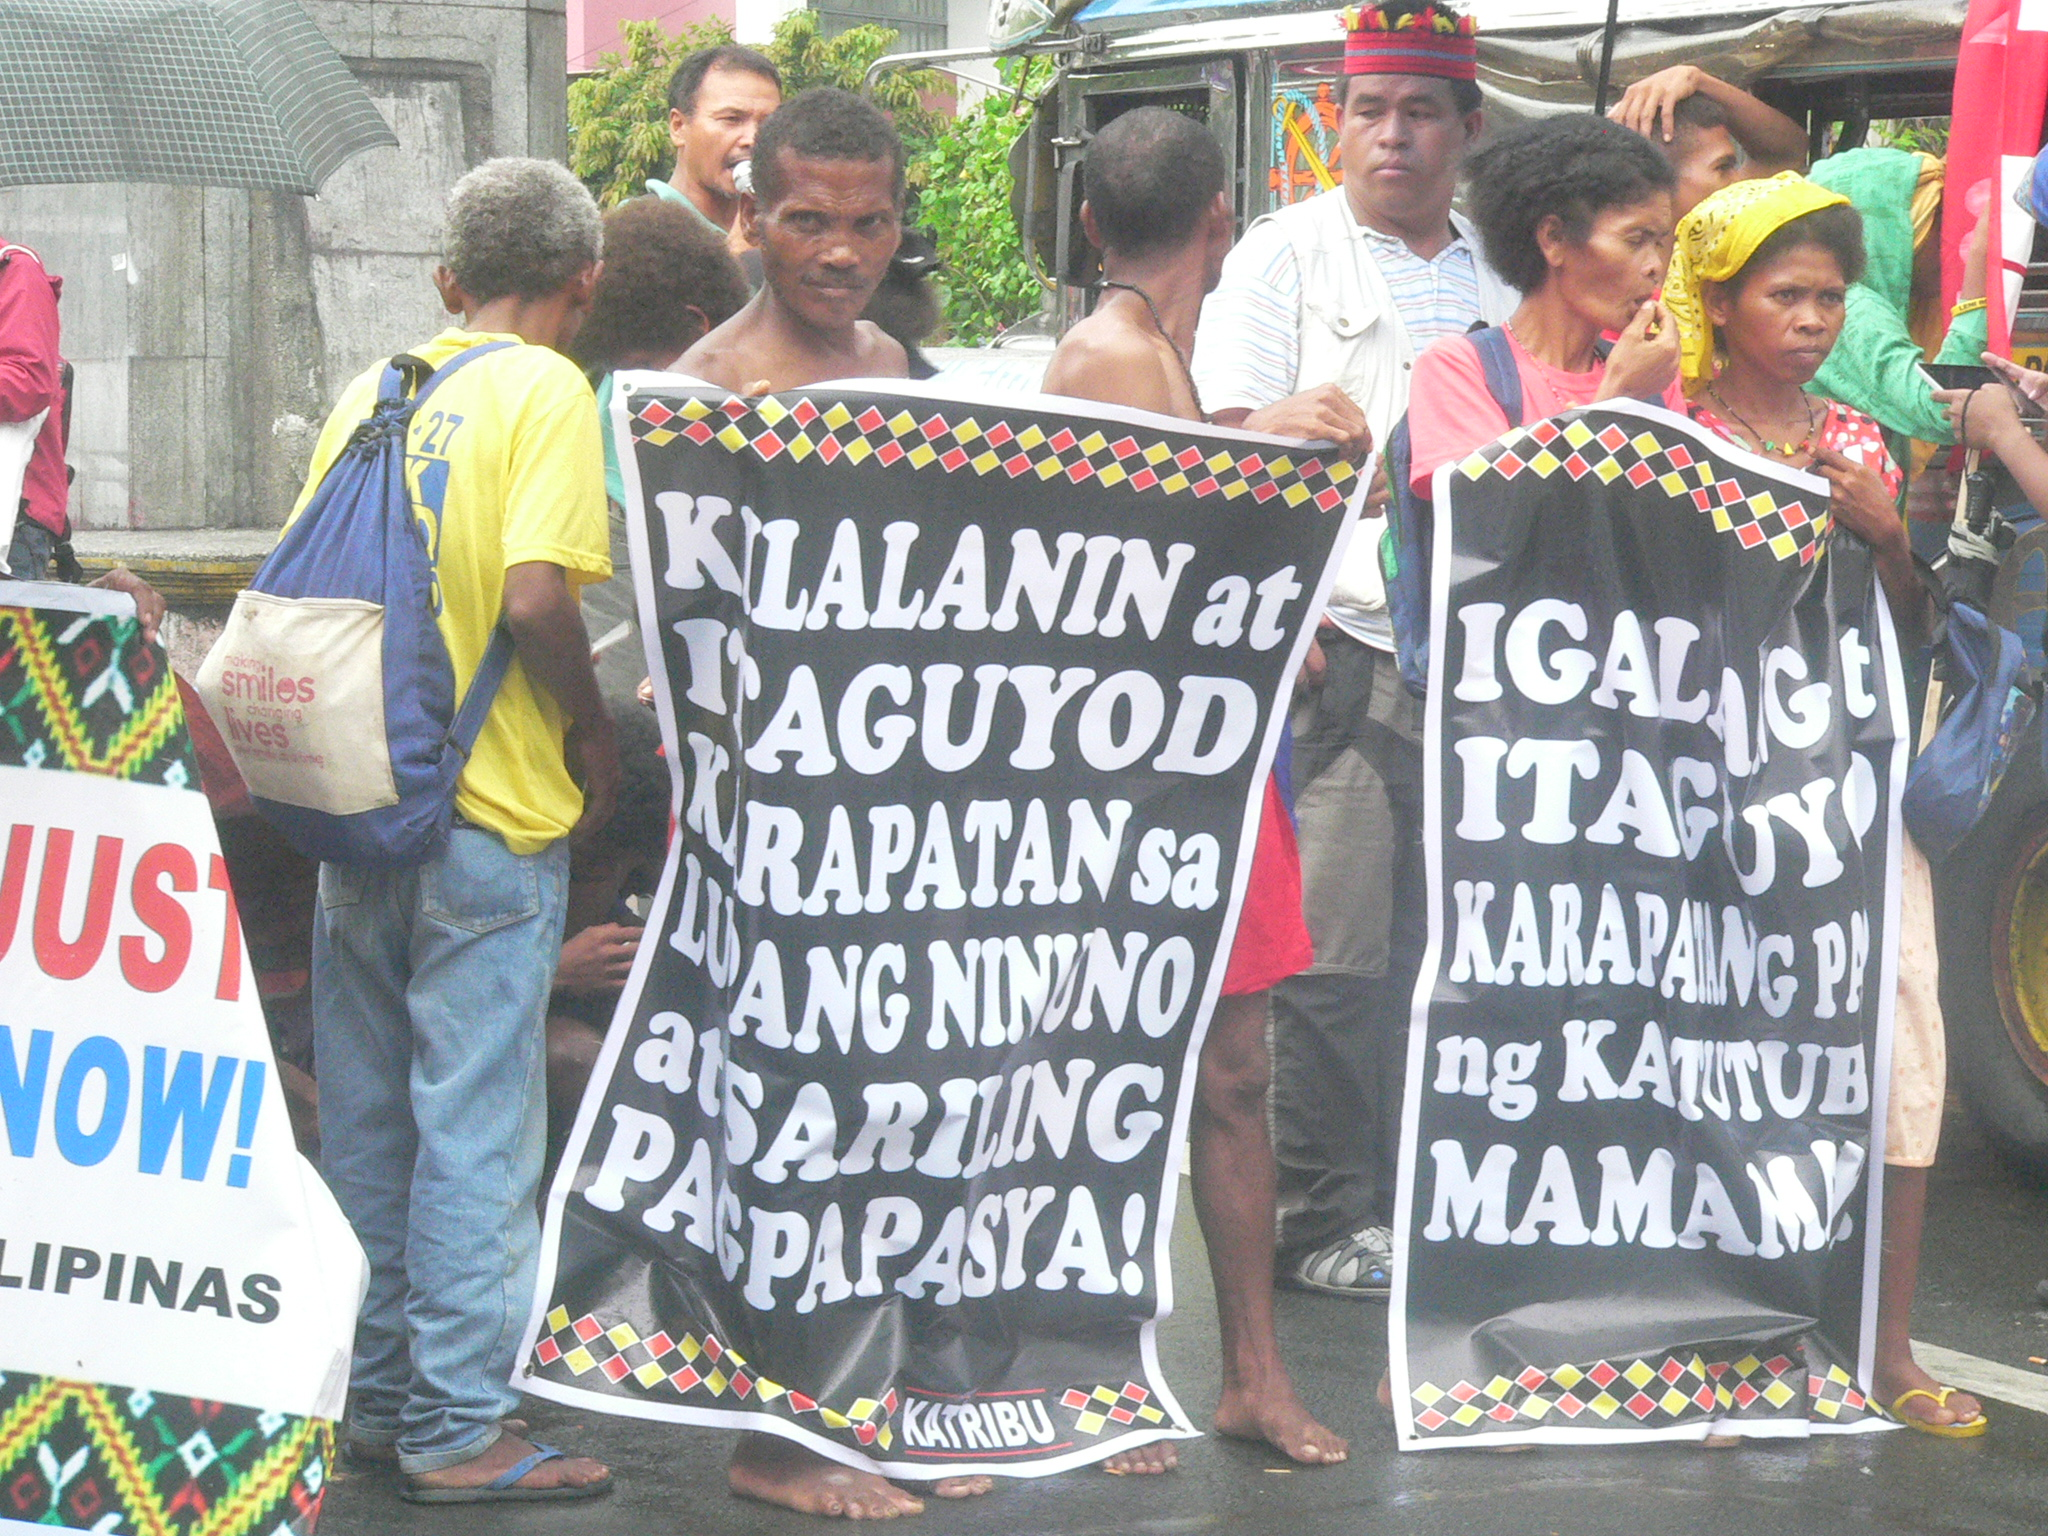 Aytas from Central Luzon at the Mendiola picket on Aug. 8. (Photo by Dee Ayroso/Bulatlat)